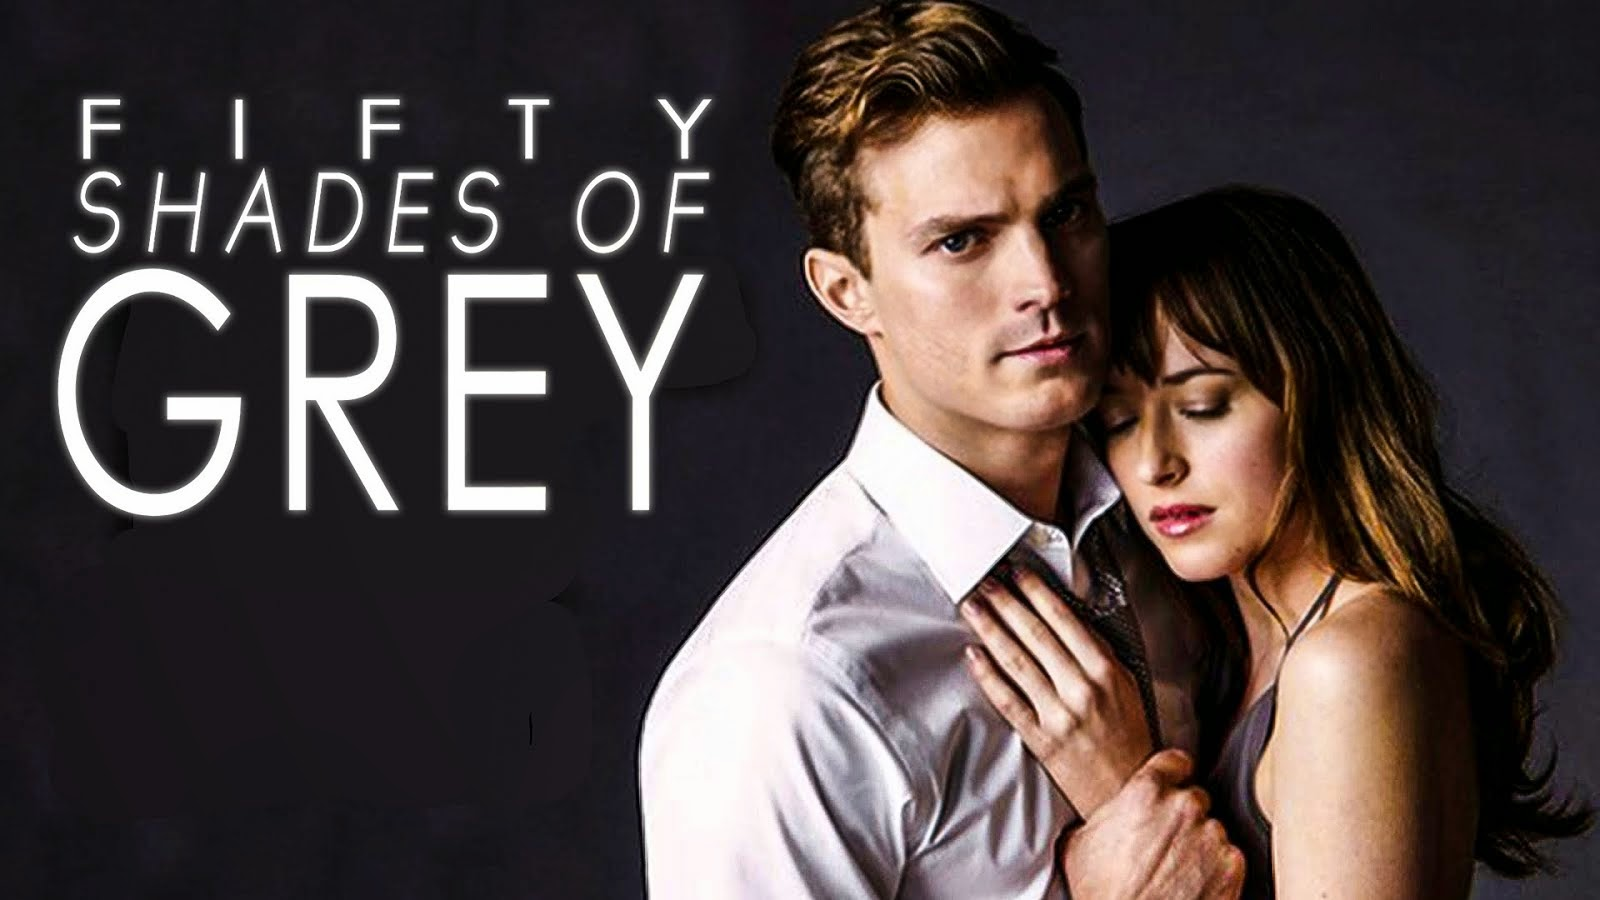 Home »»Unlabelled» Fifty Shades of Grey Full Movie Download 2015